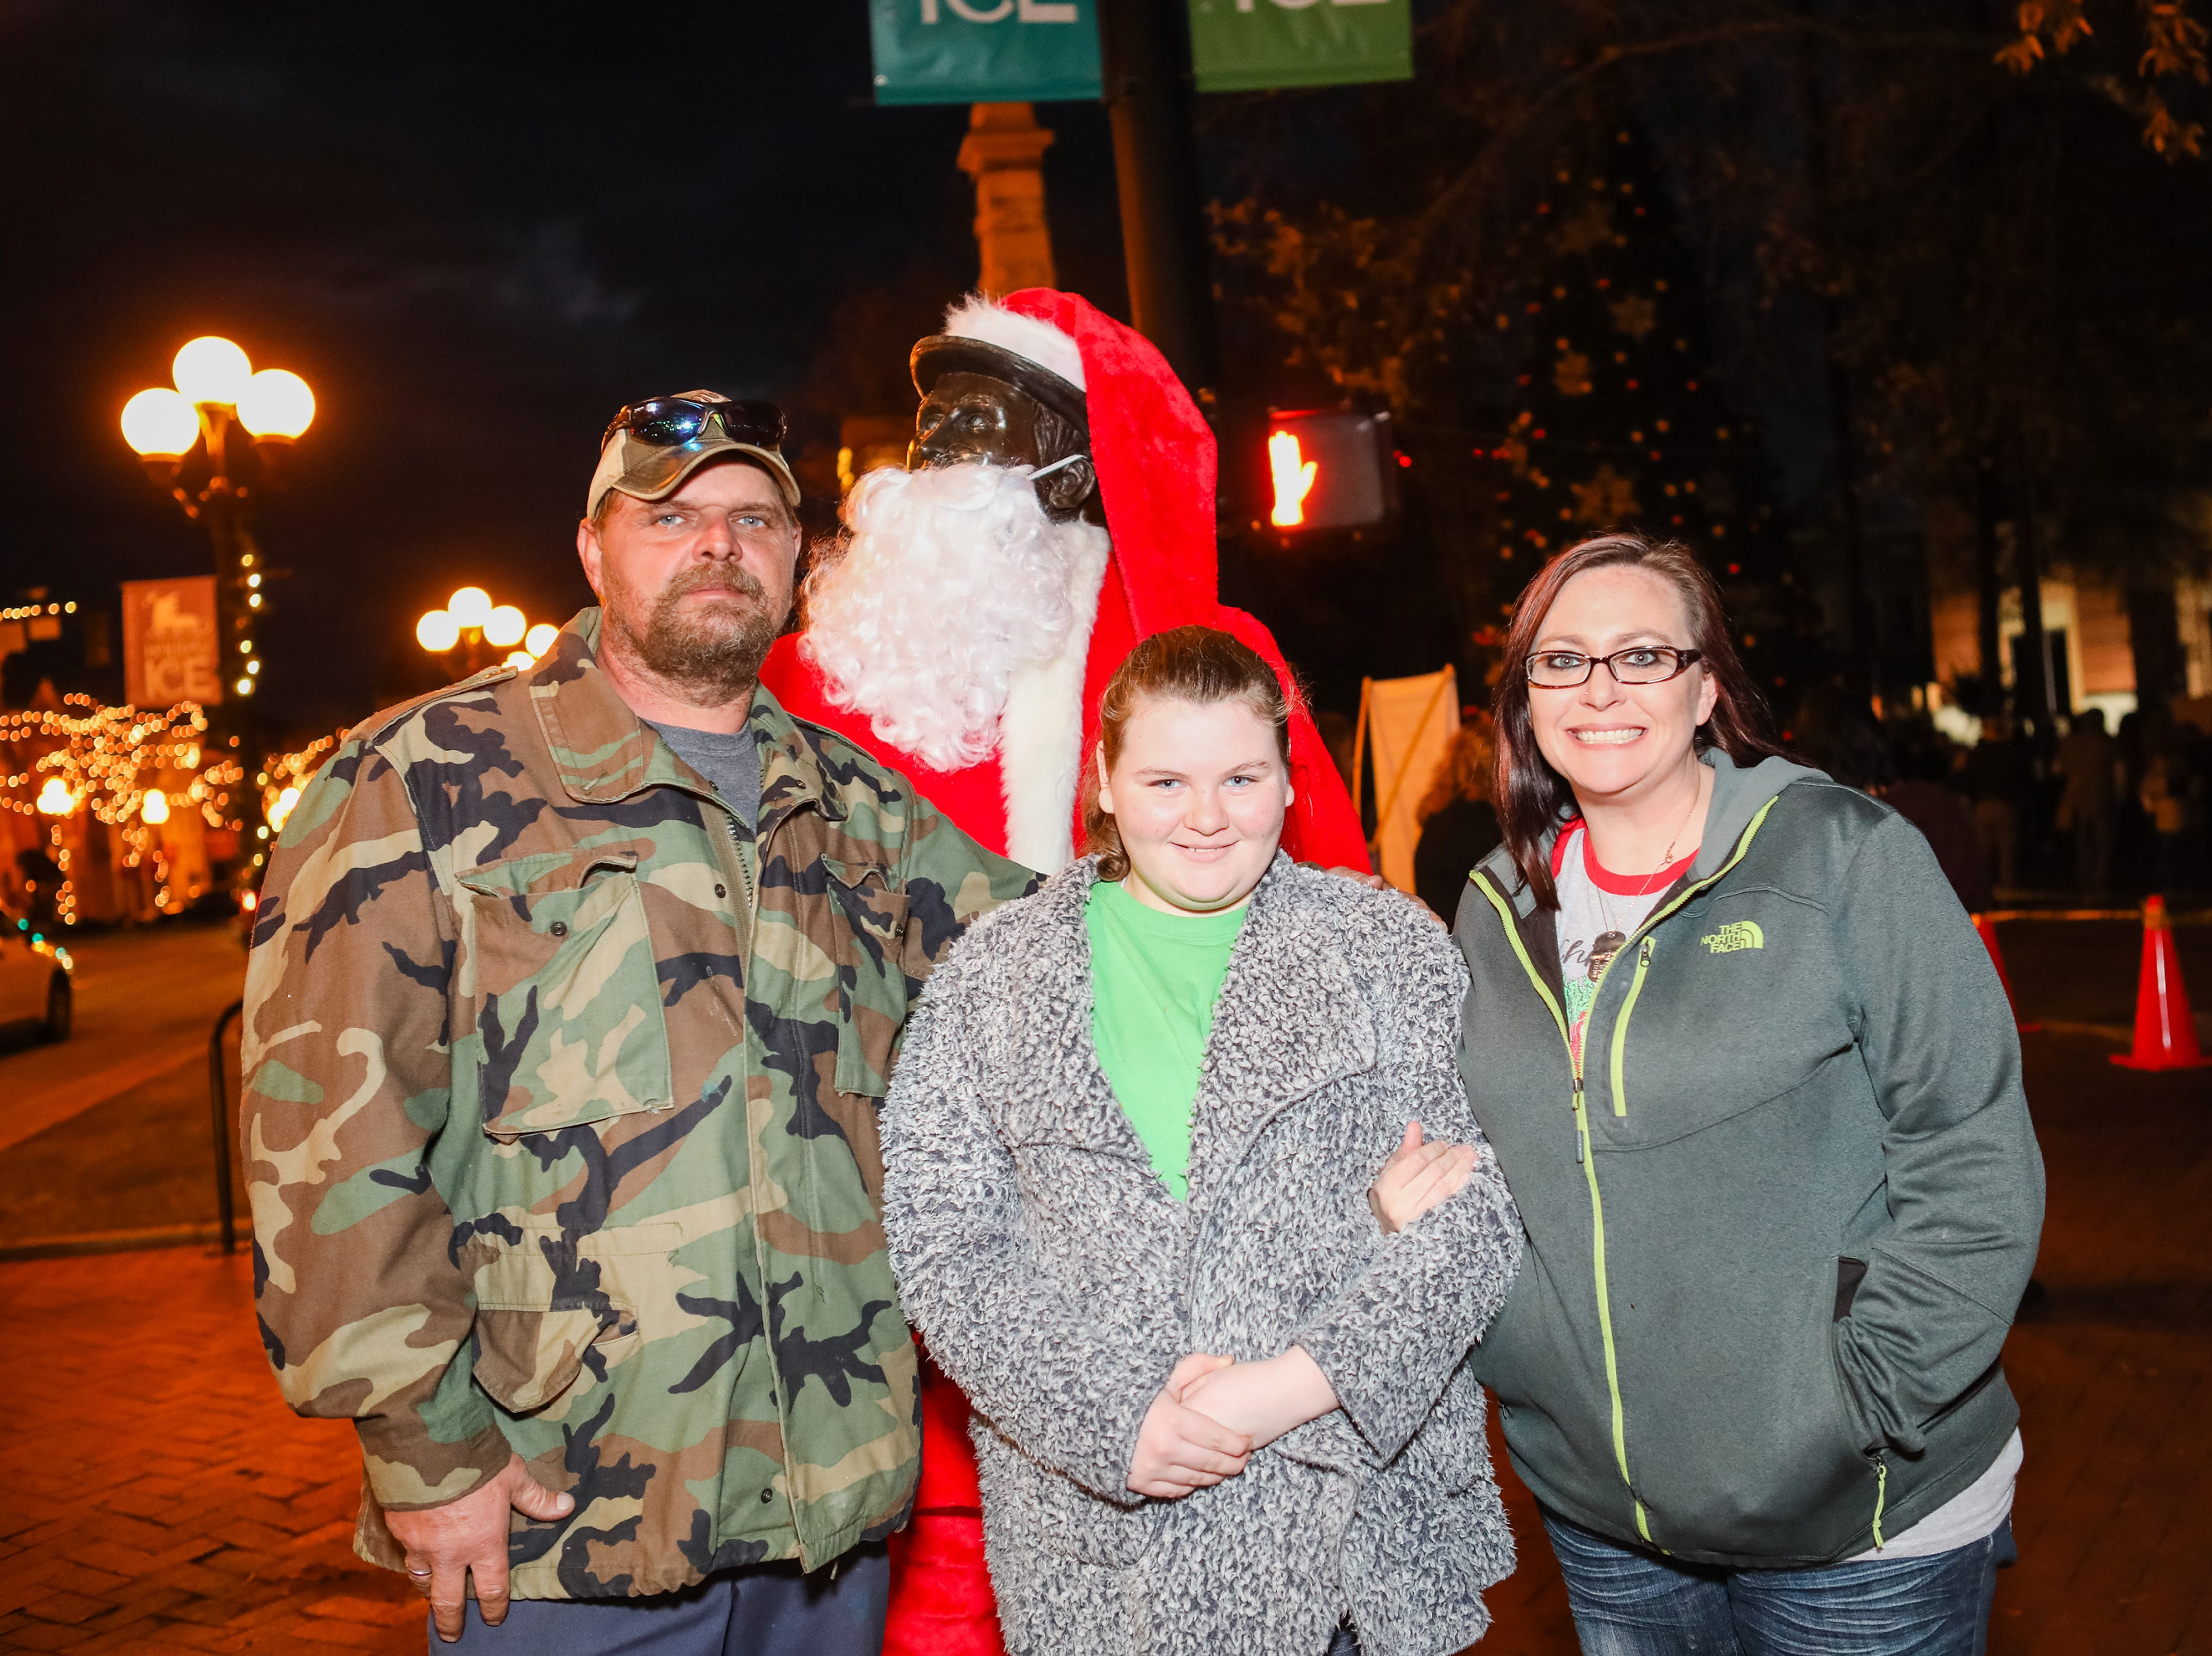 John Browing , Ashley Browing, and Macy Haynes pose infant of Santa during the Piedmont Natural Gas Holiday Walk and Christmas Tree Lighting in downtown Anderson